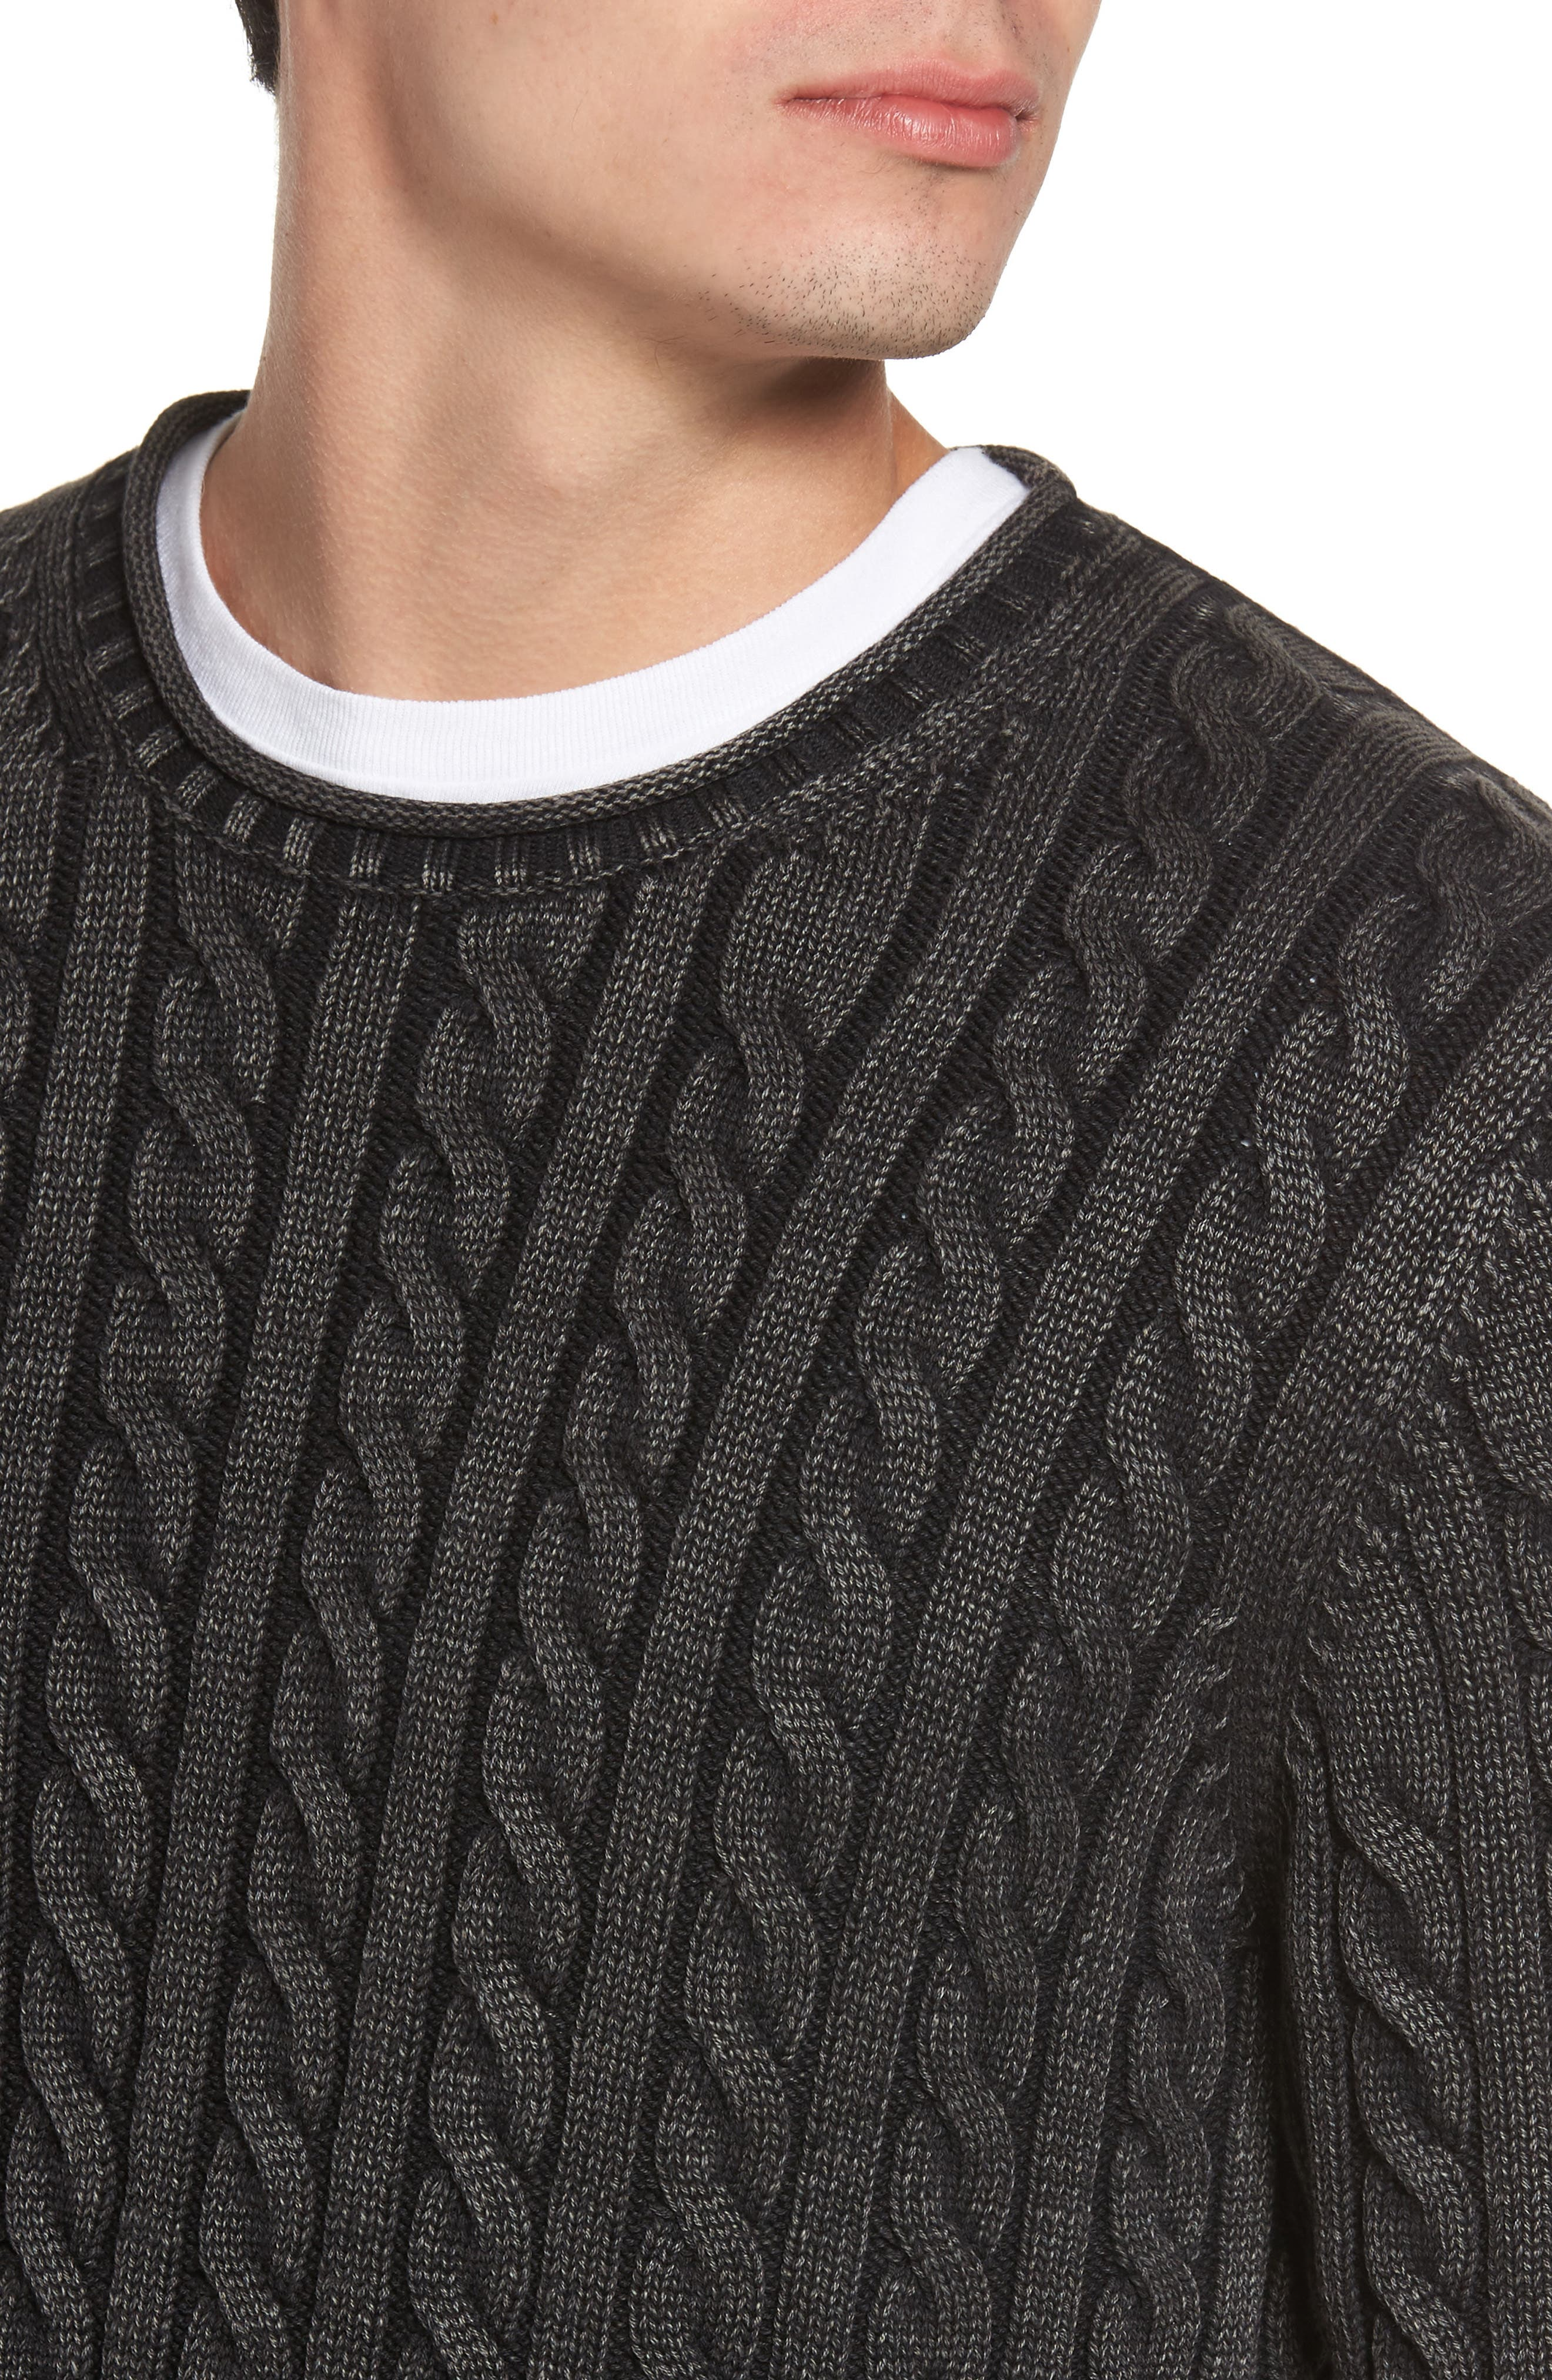 Landray Cable Knit Cotton Sweater,                             Alternate thumbnail 4, color,                             021